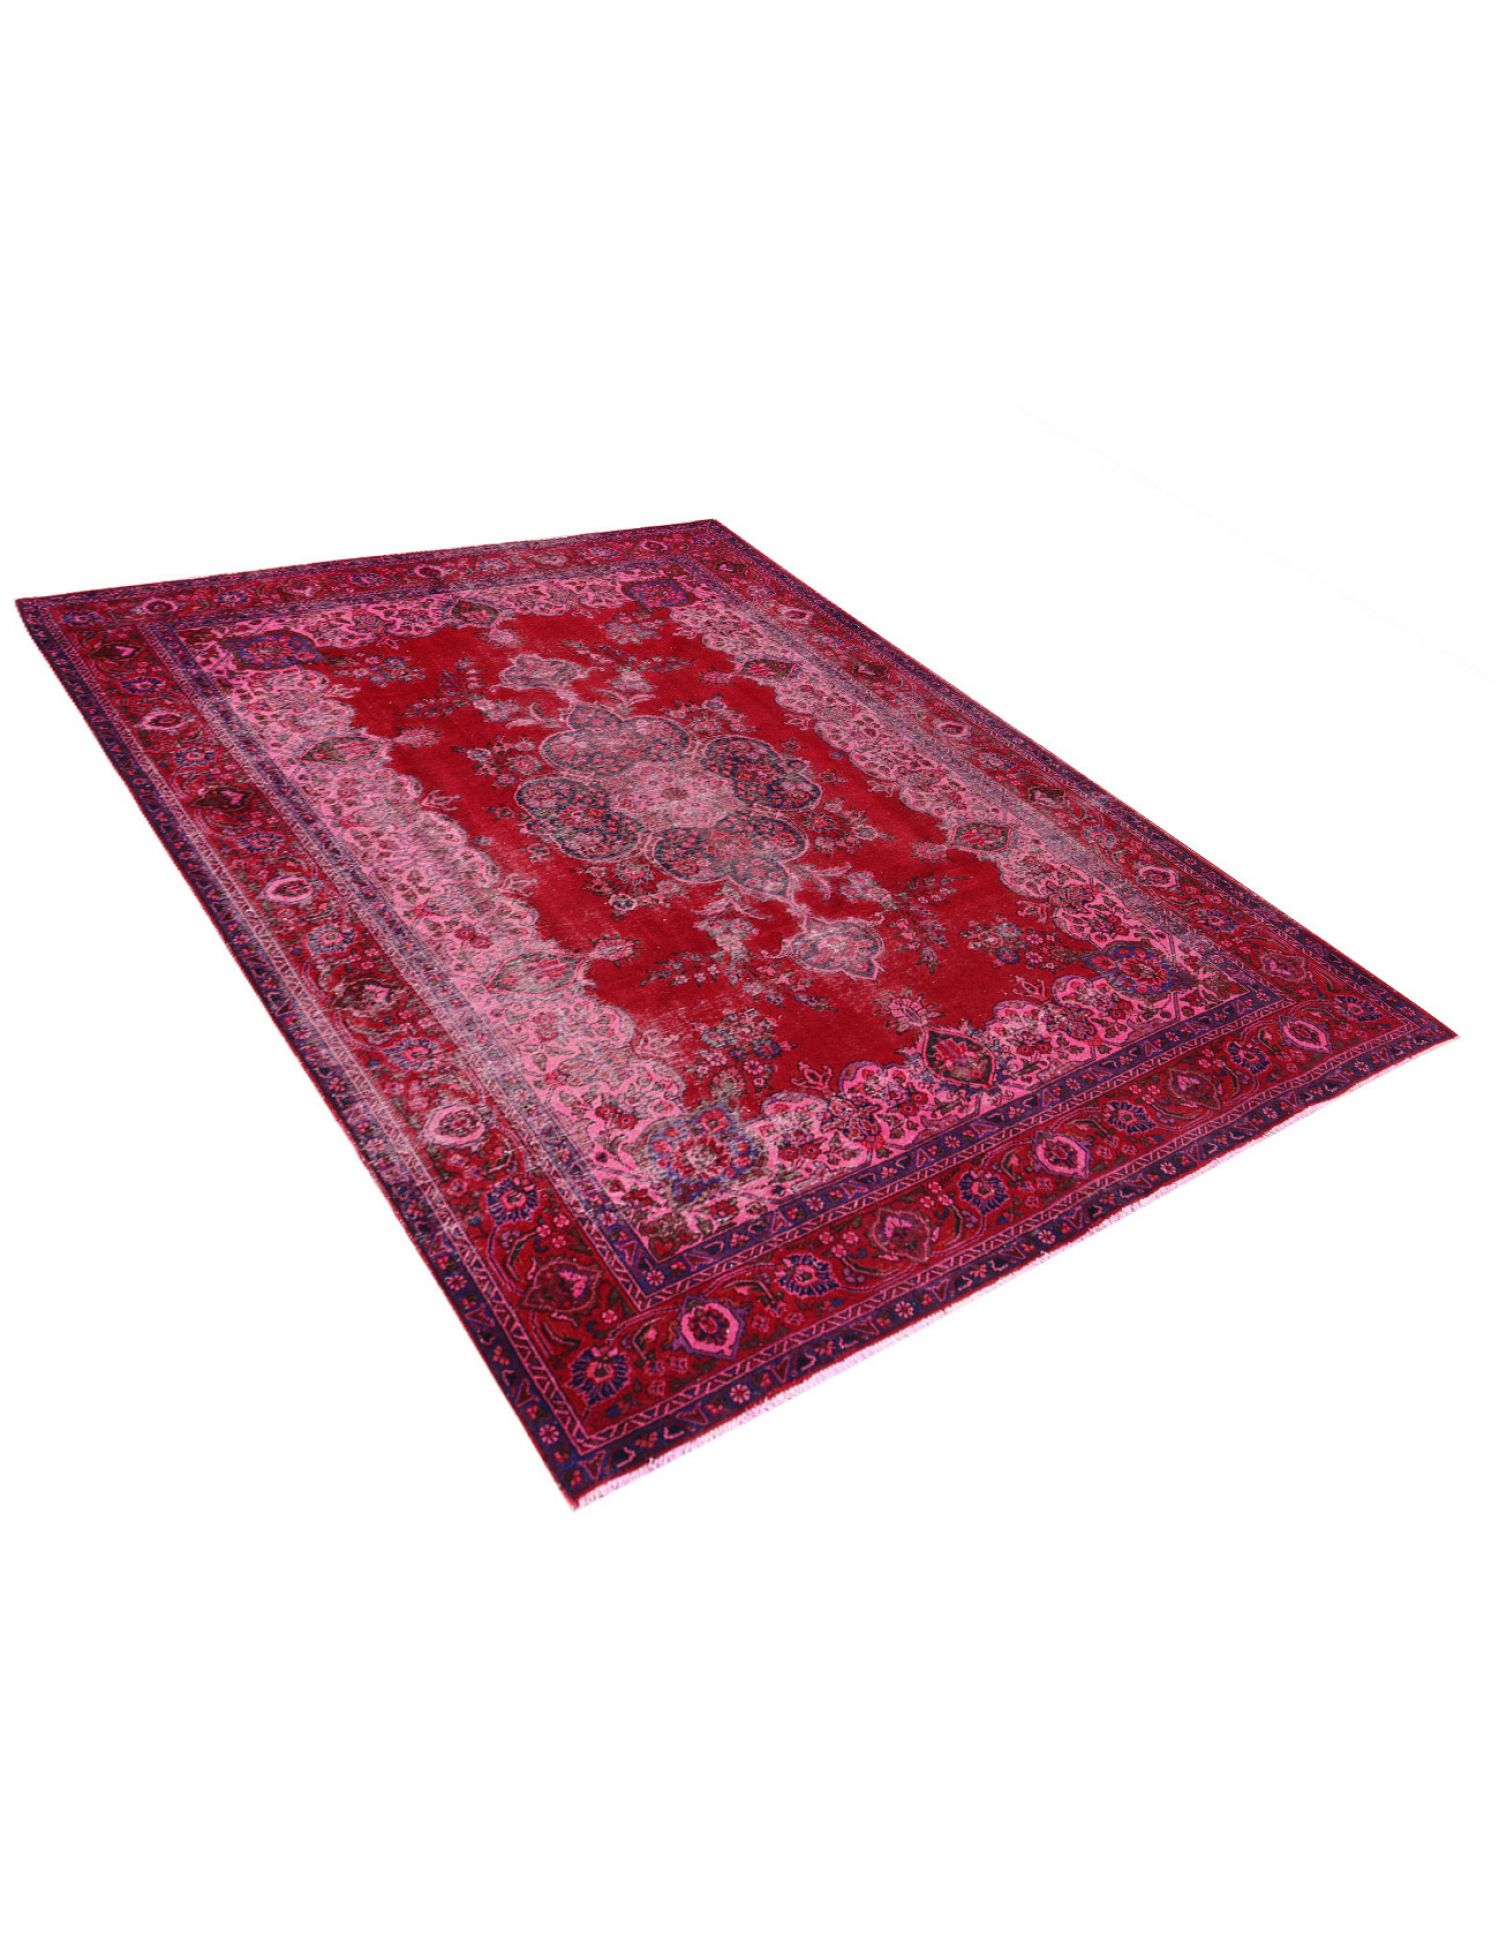 Vintage Carpet  purple <br/>350 x 250 cm